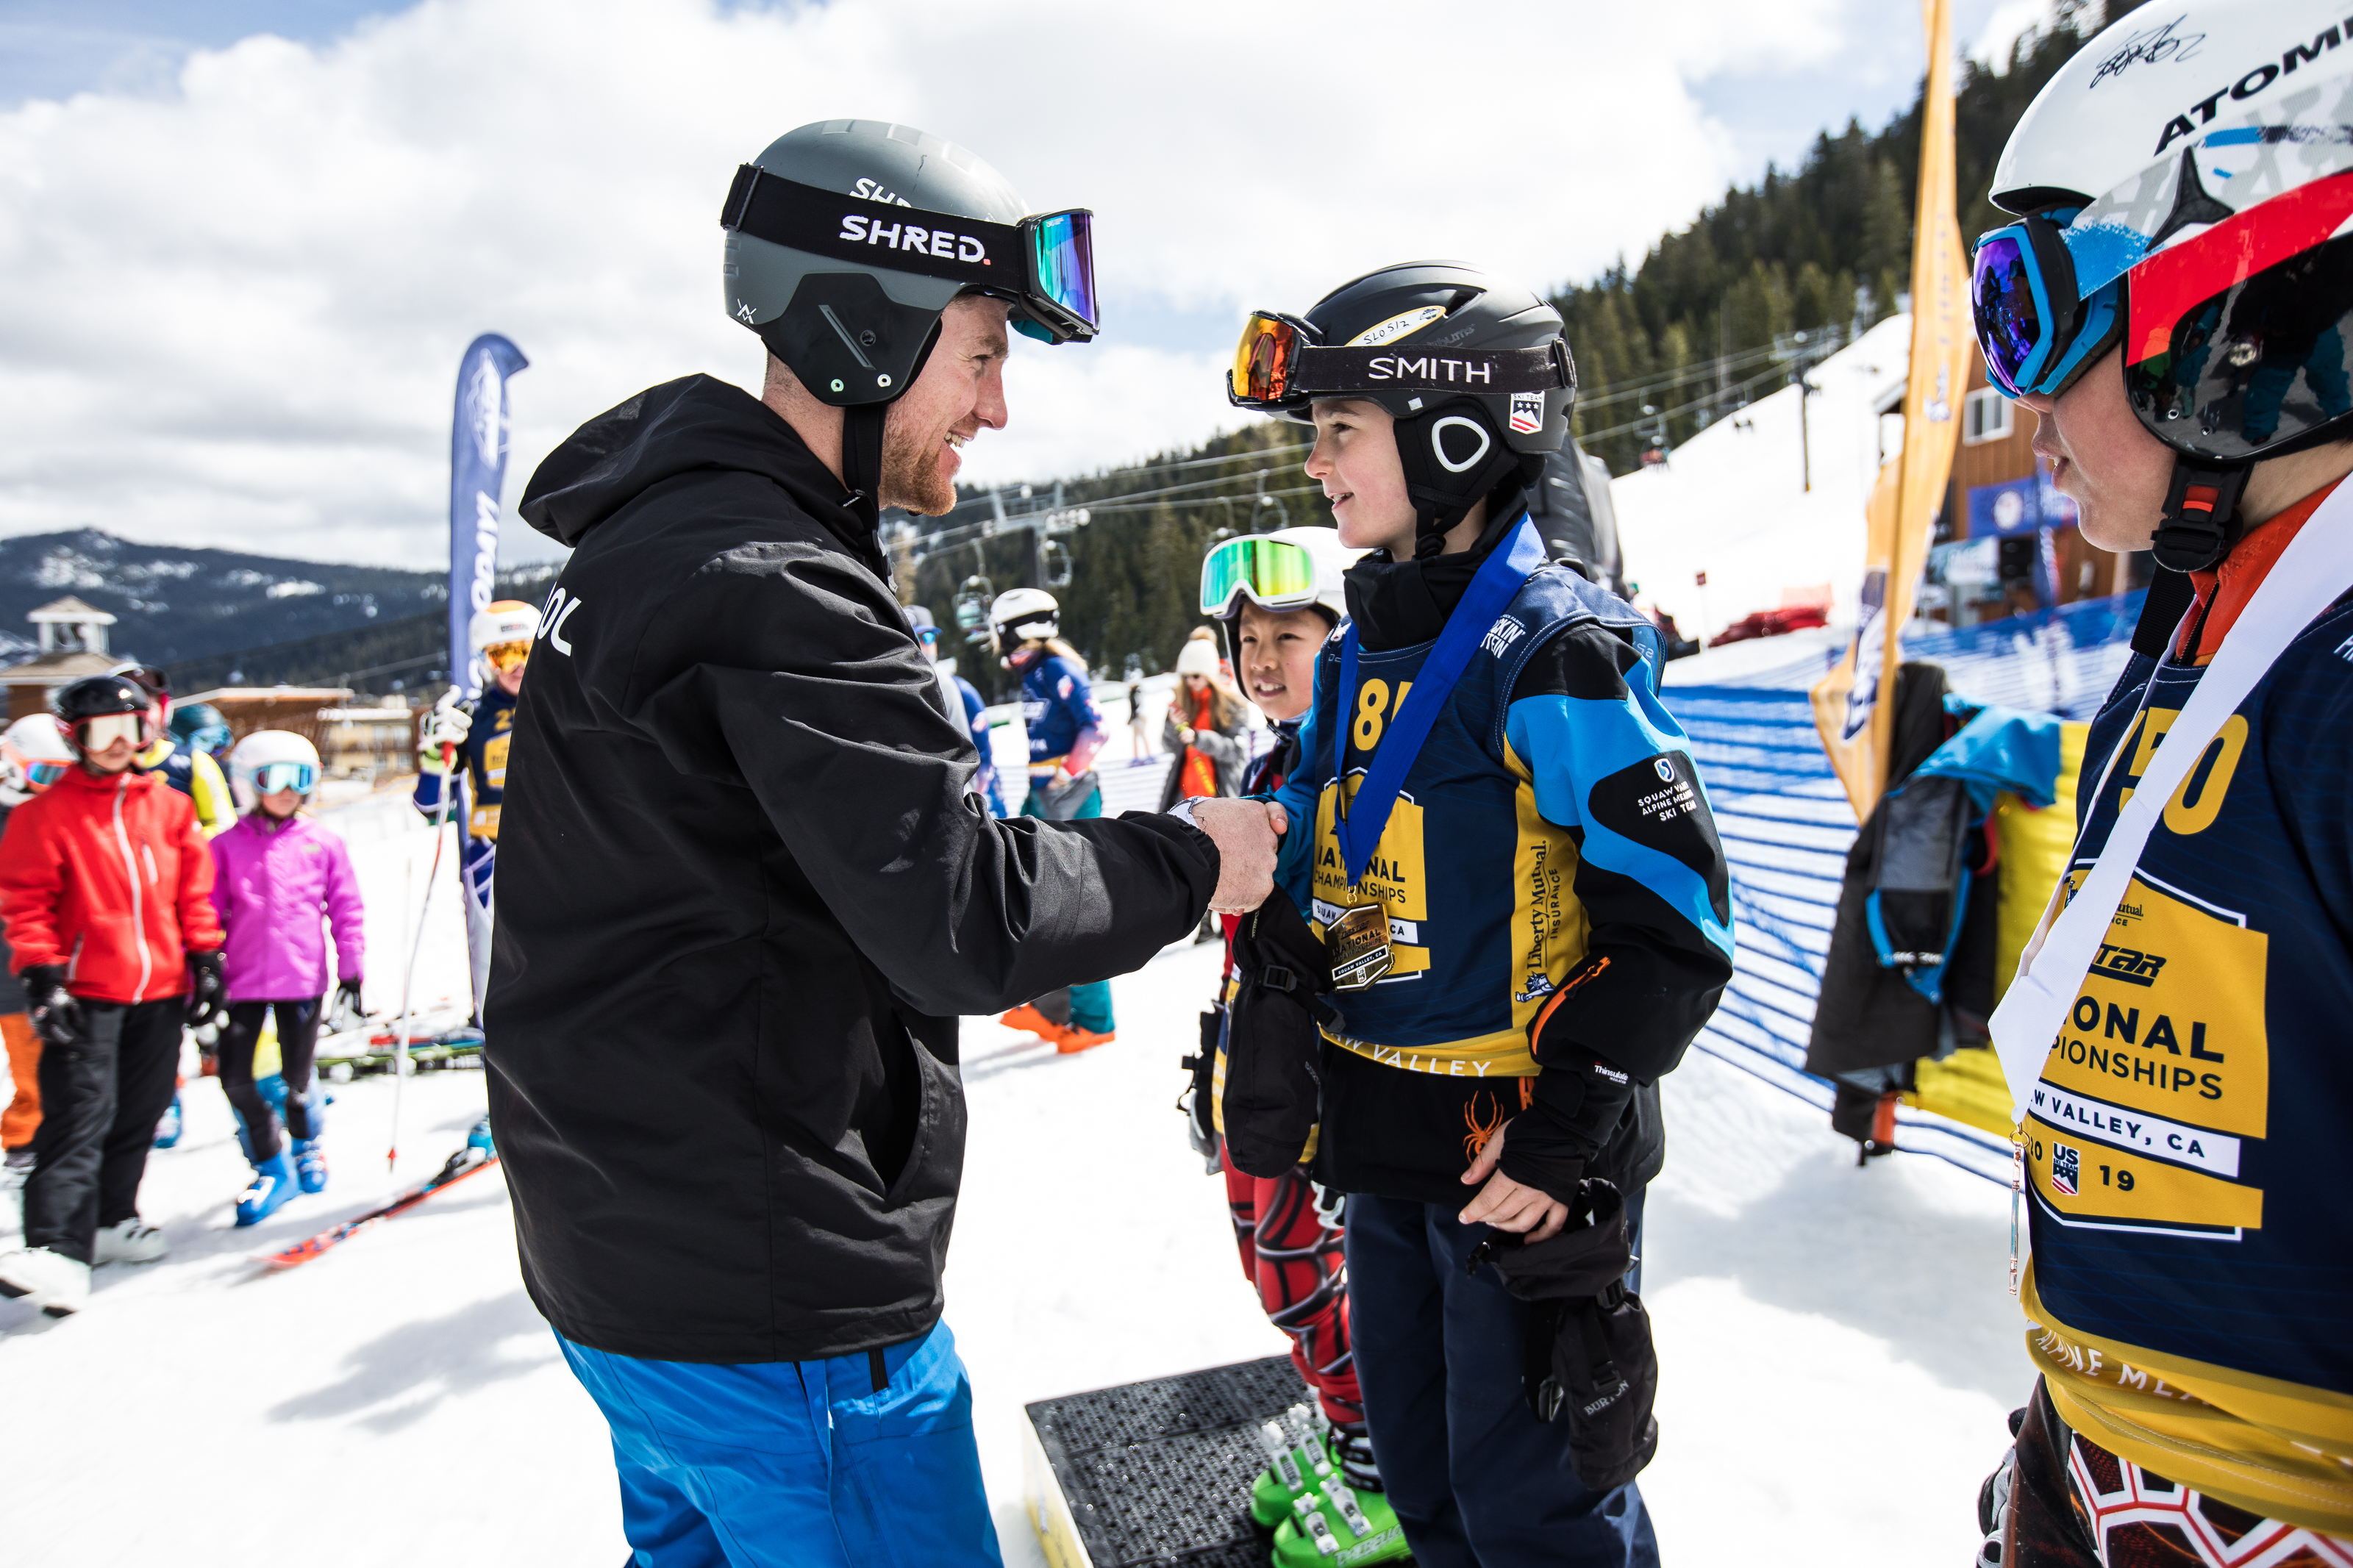 National Pacesetter and U.S. Ski Team member RCS hands out medals during Race of Champions